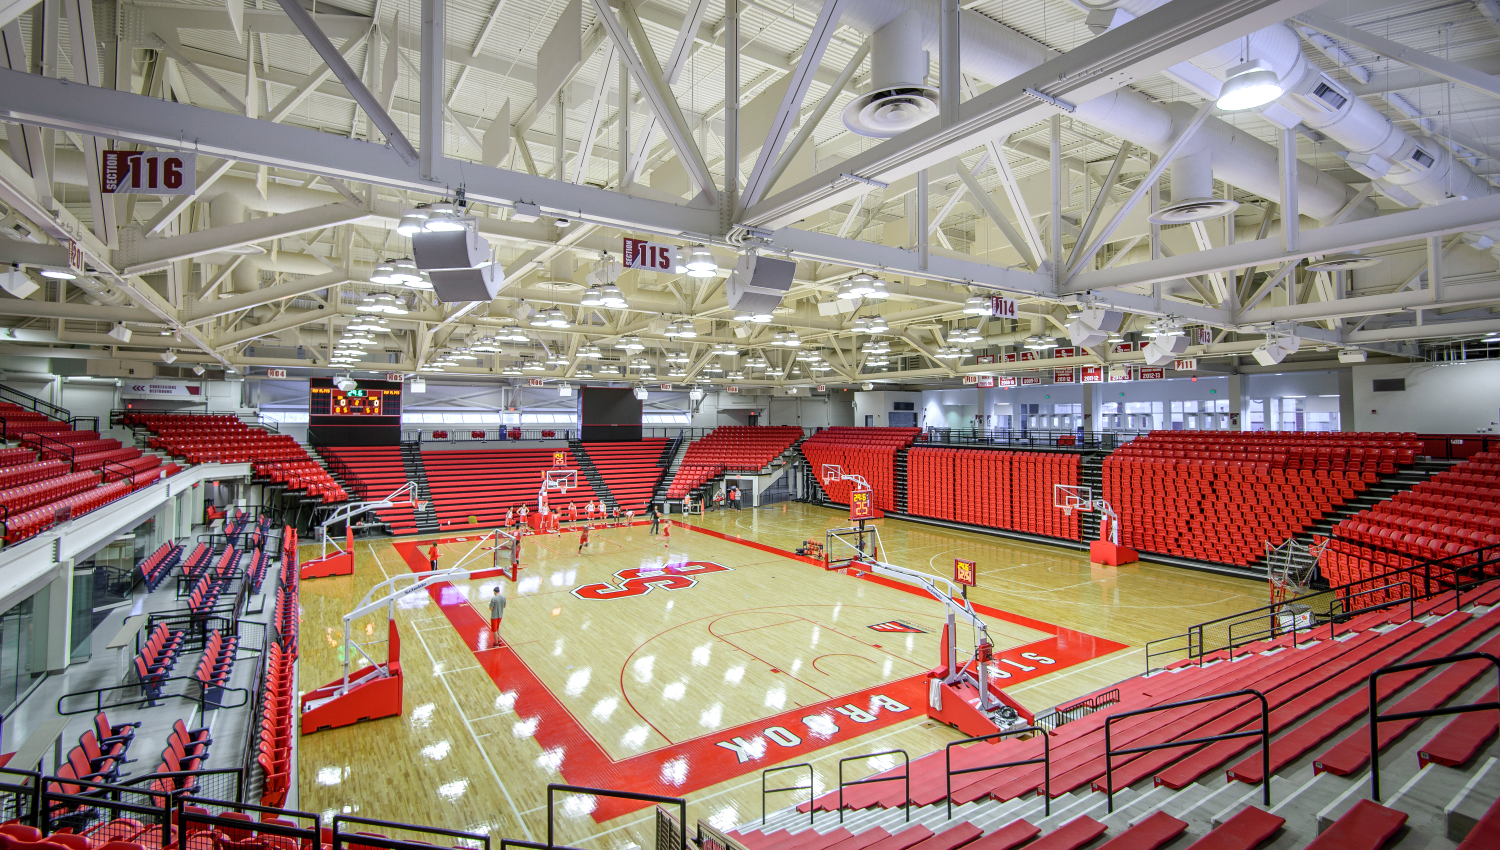 SUNY Stony Brook Arena Renovation